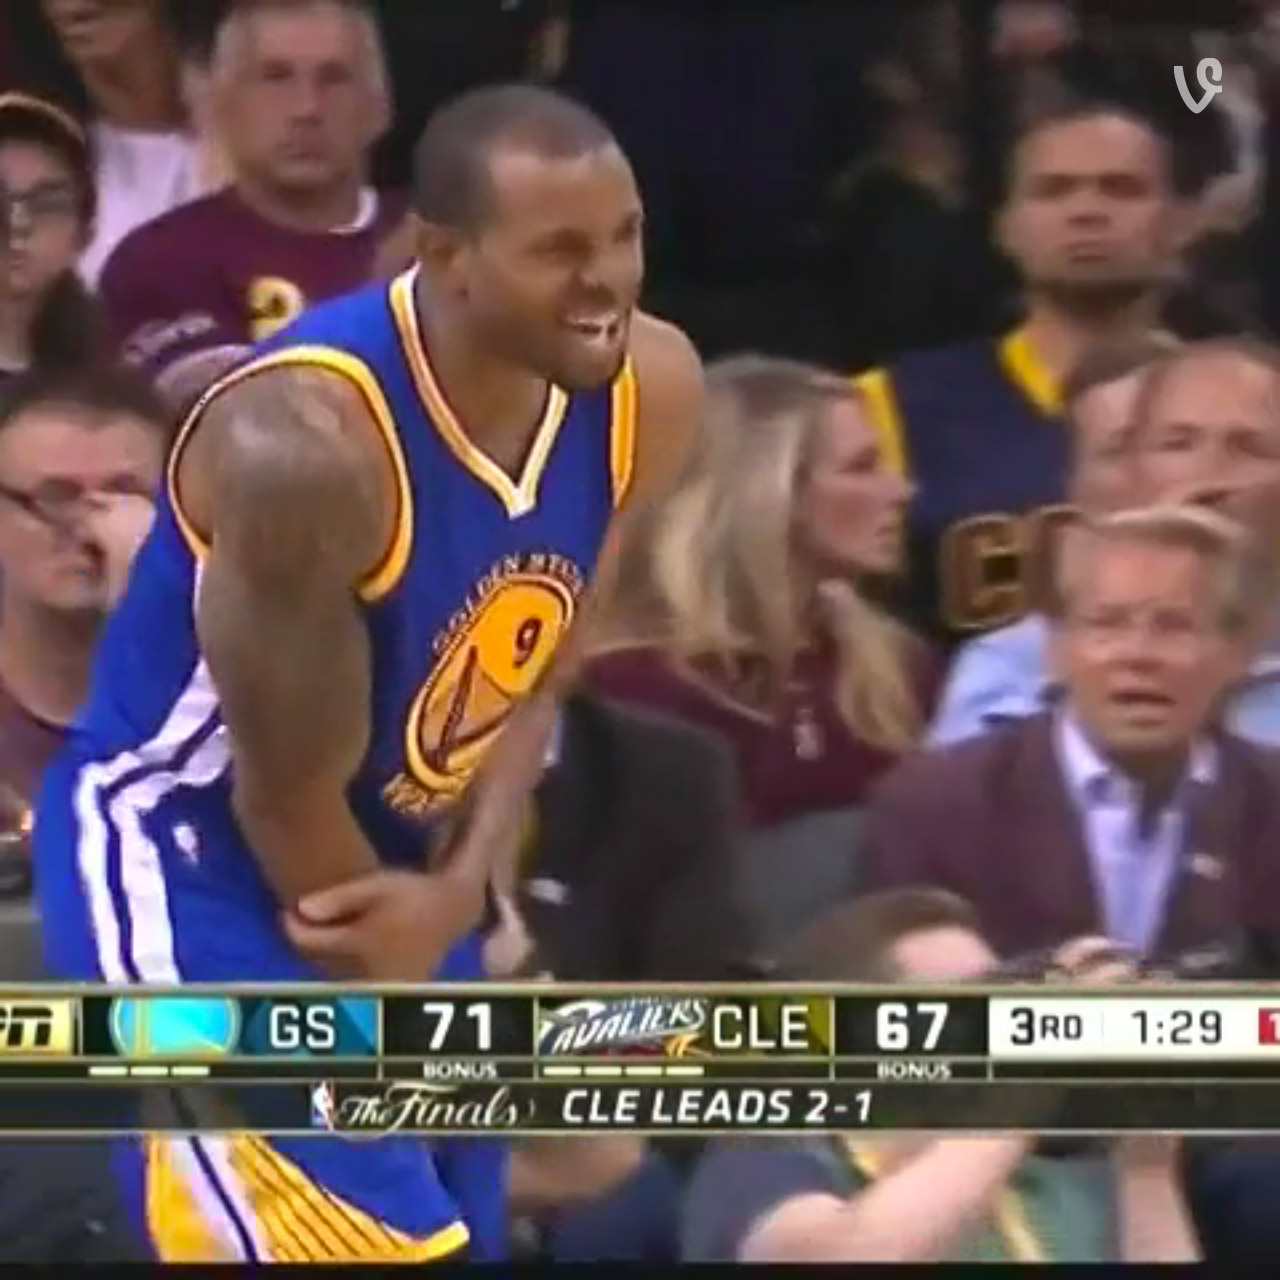 Andre Iguodala mocks LeBron James in Game 4 of the NBA Finals